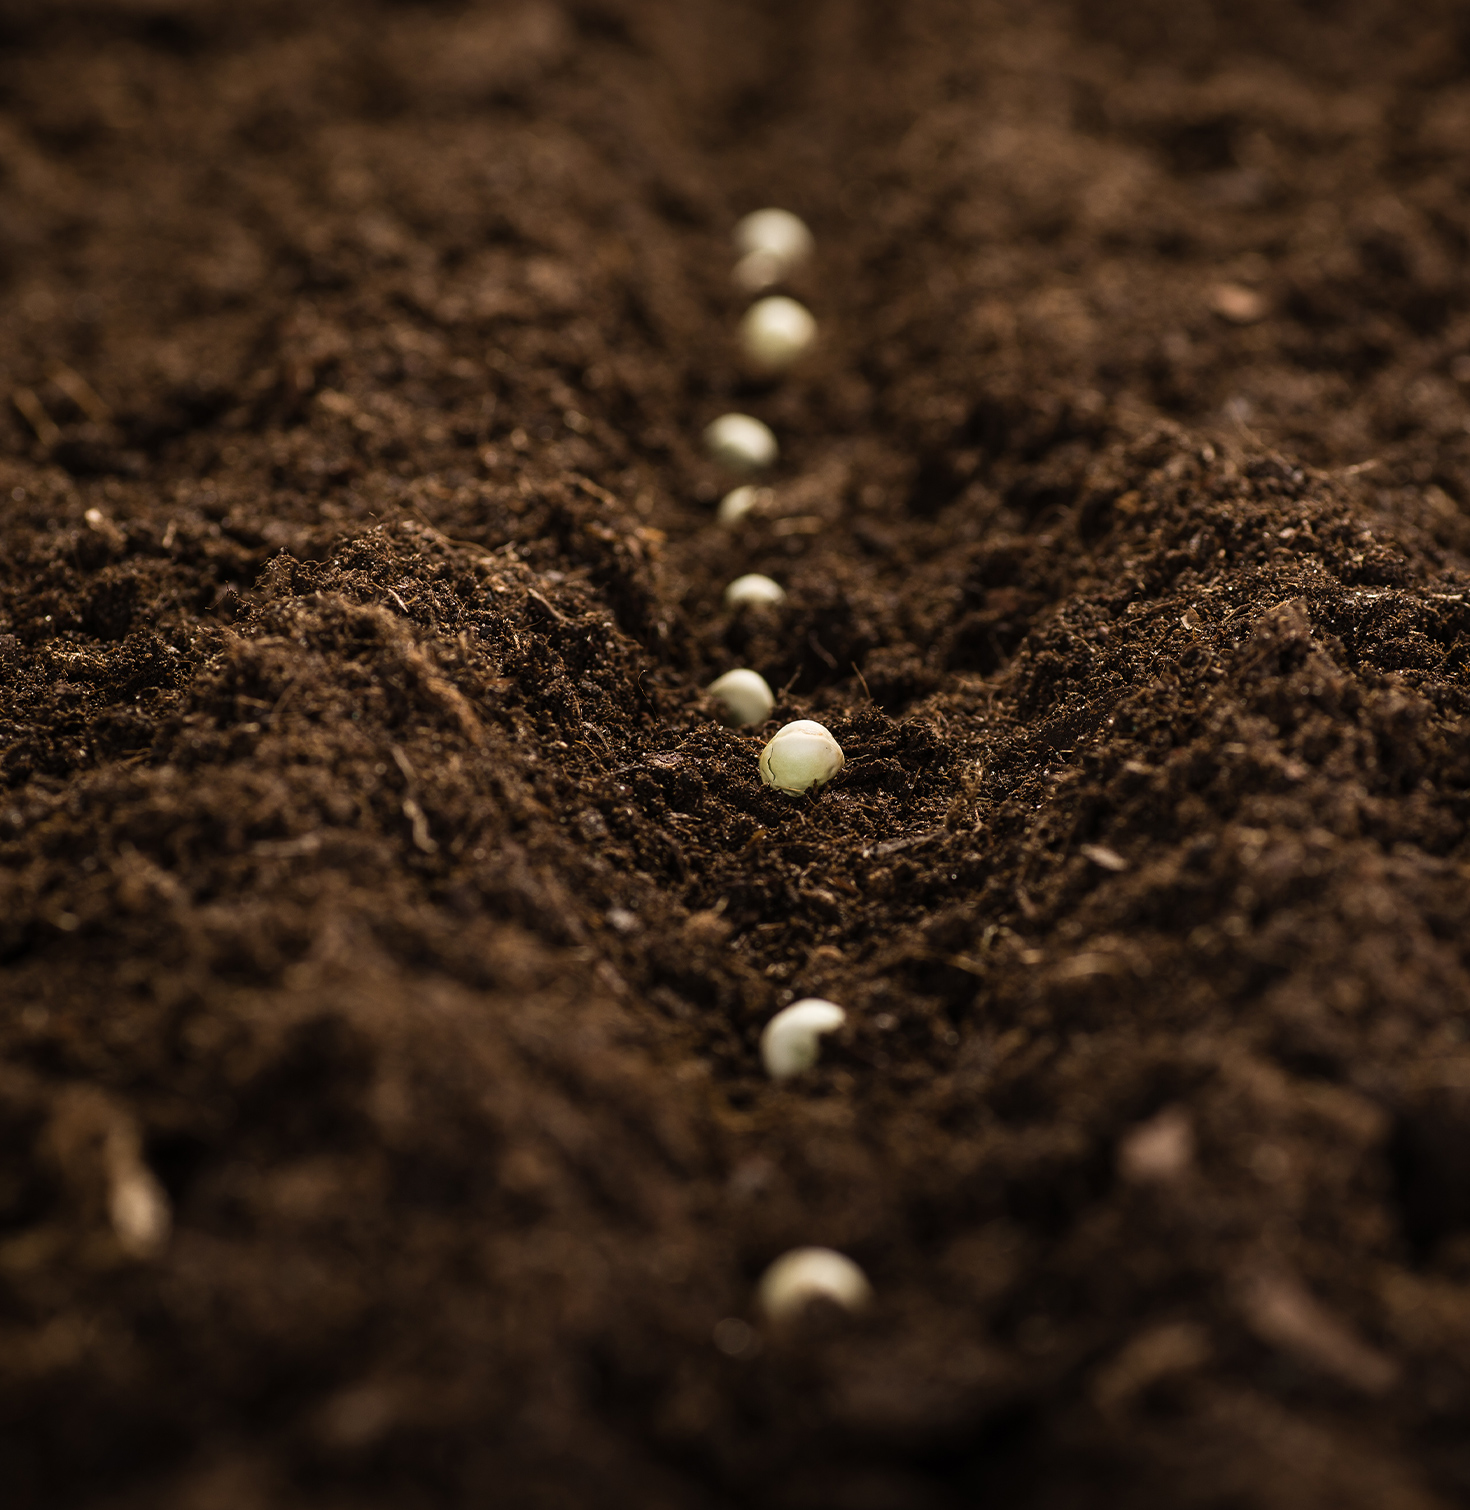 Picture of seeds in ground